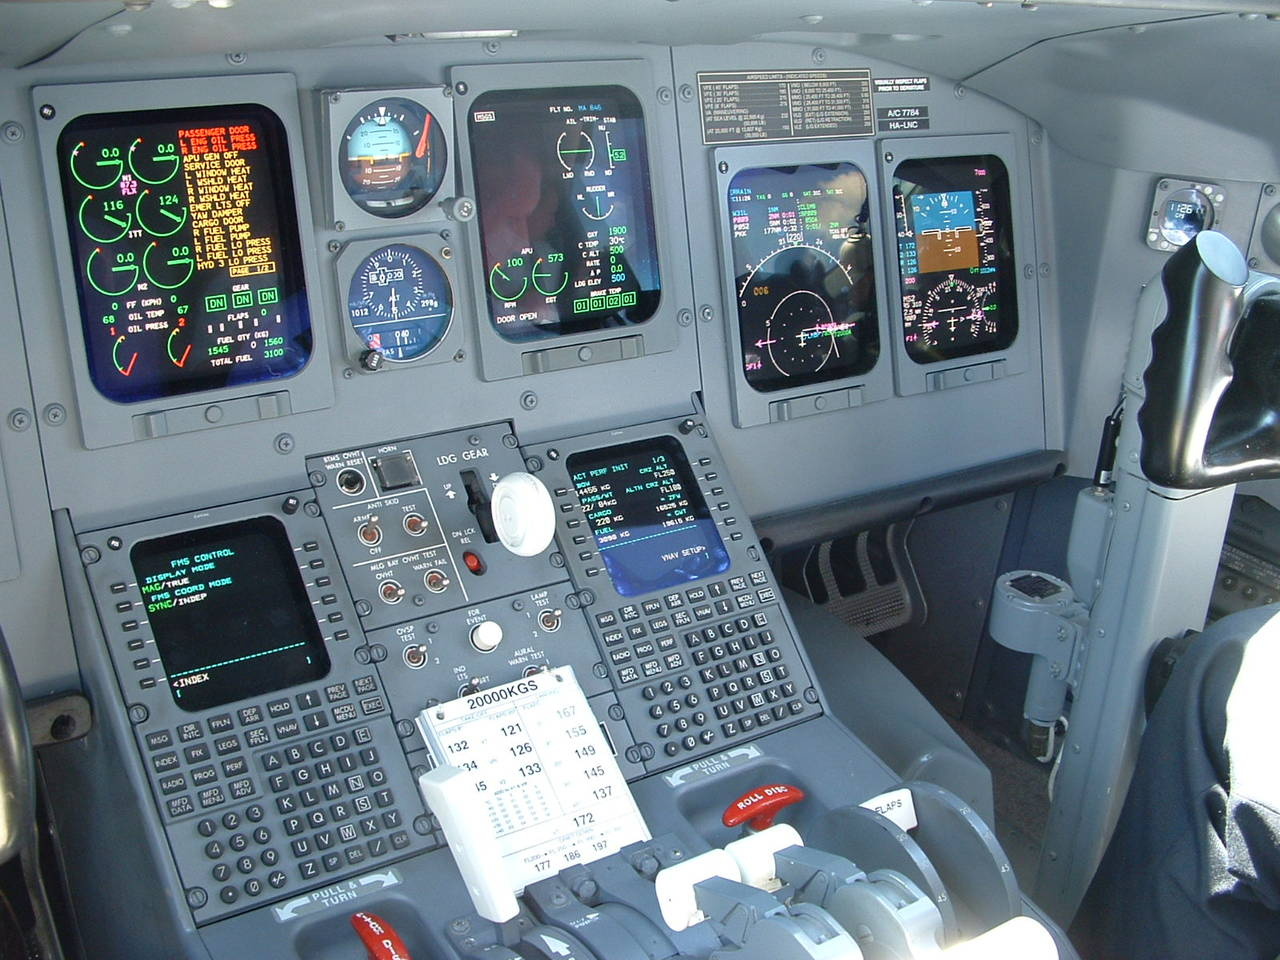 hight resolution of avionics refers to the electronic systems used on an aircraft avionic systems include communications navigation monitoring flight control systems